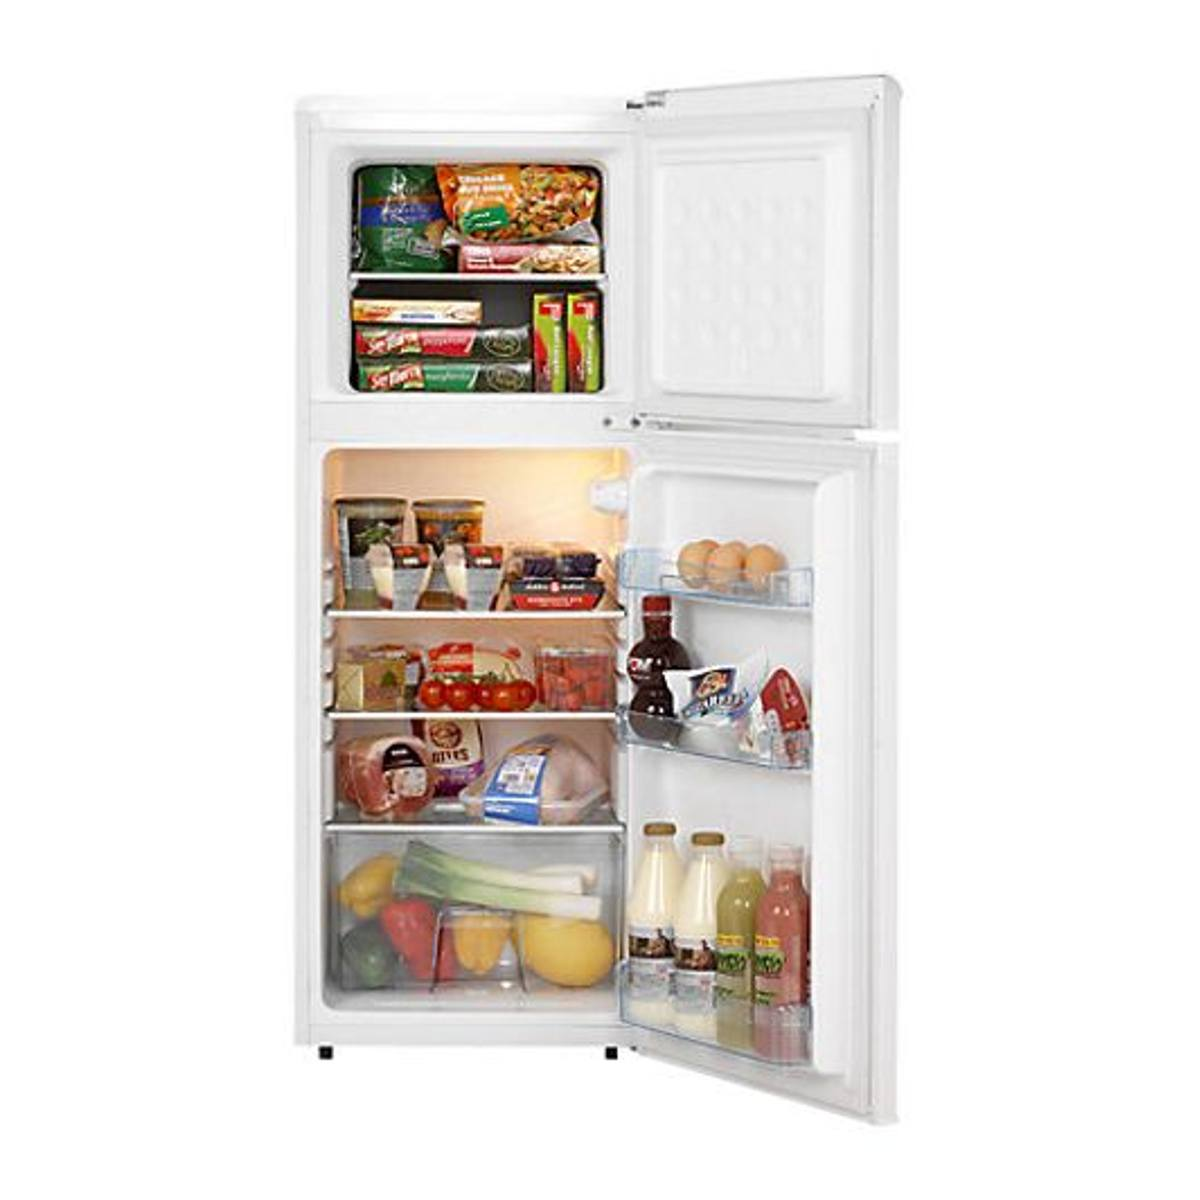 Lec T50122W A+ Energy Rated Freestanding Fridge Freezer & 97L Fridge Capacity Hughes